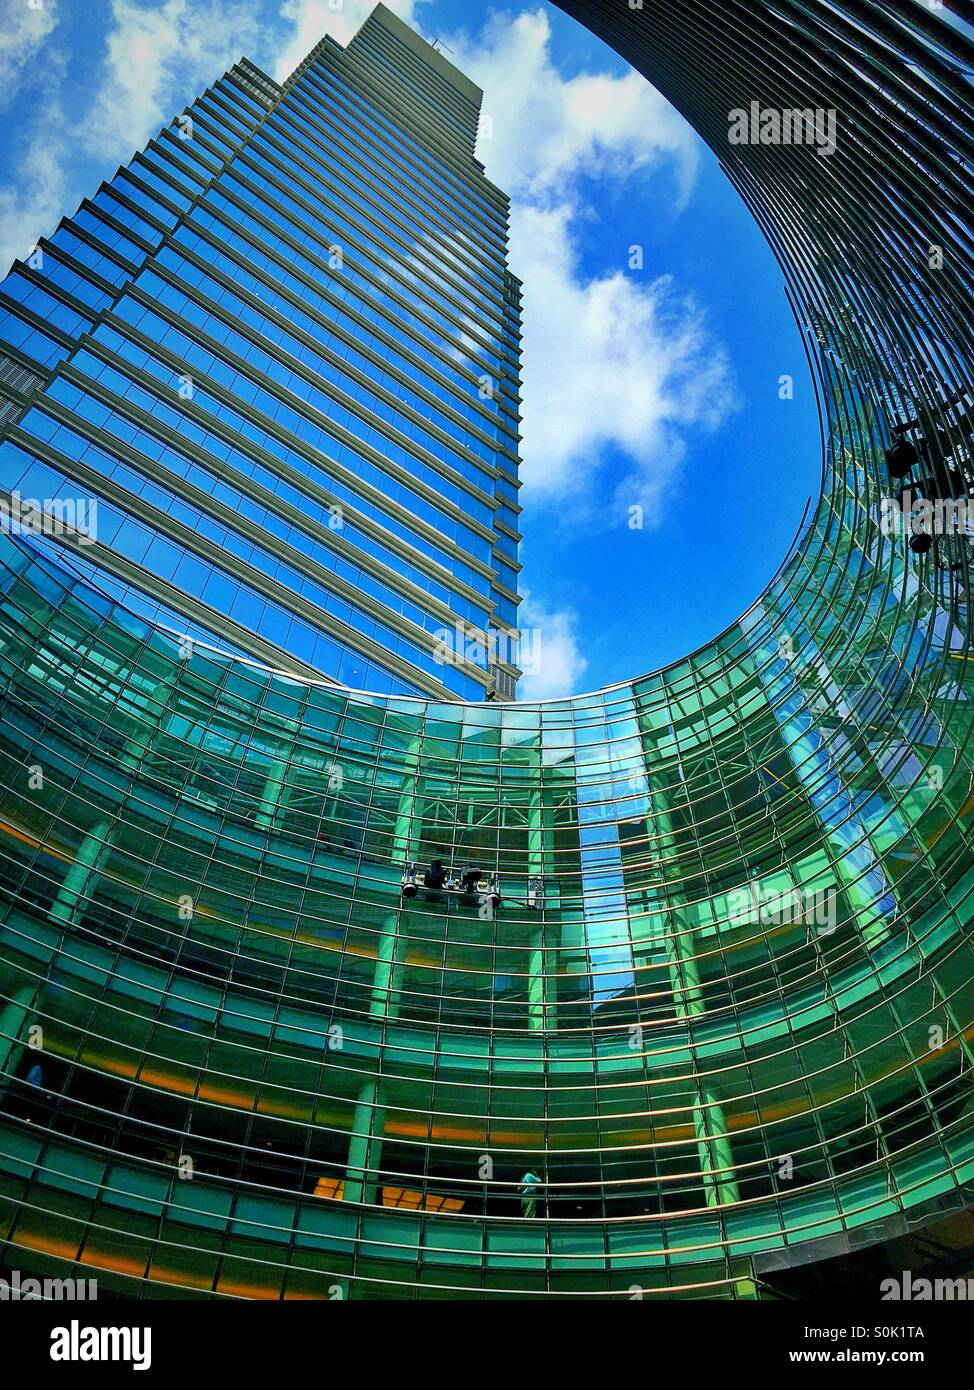 Curved glass atrium at 1 Beacon Court, Bloomberg tower, NYC. - Stock Image